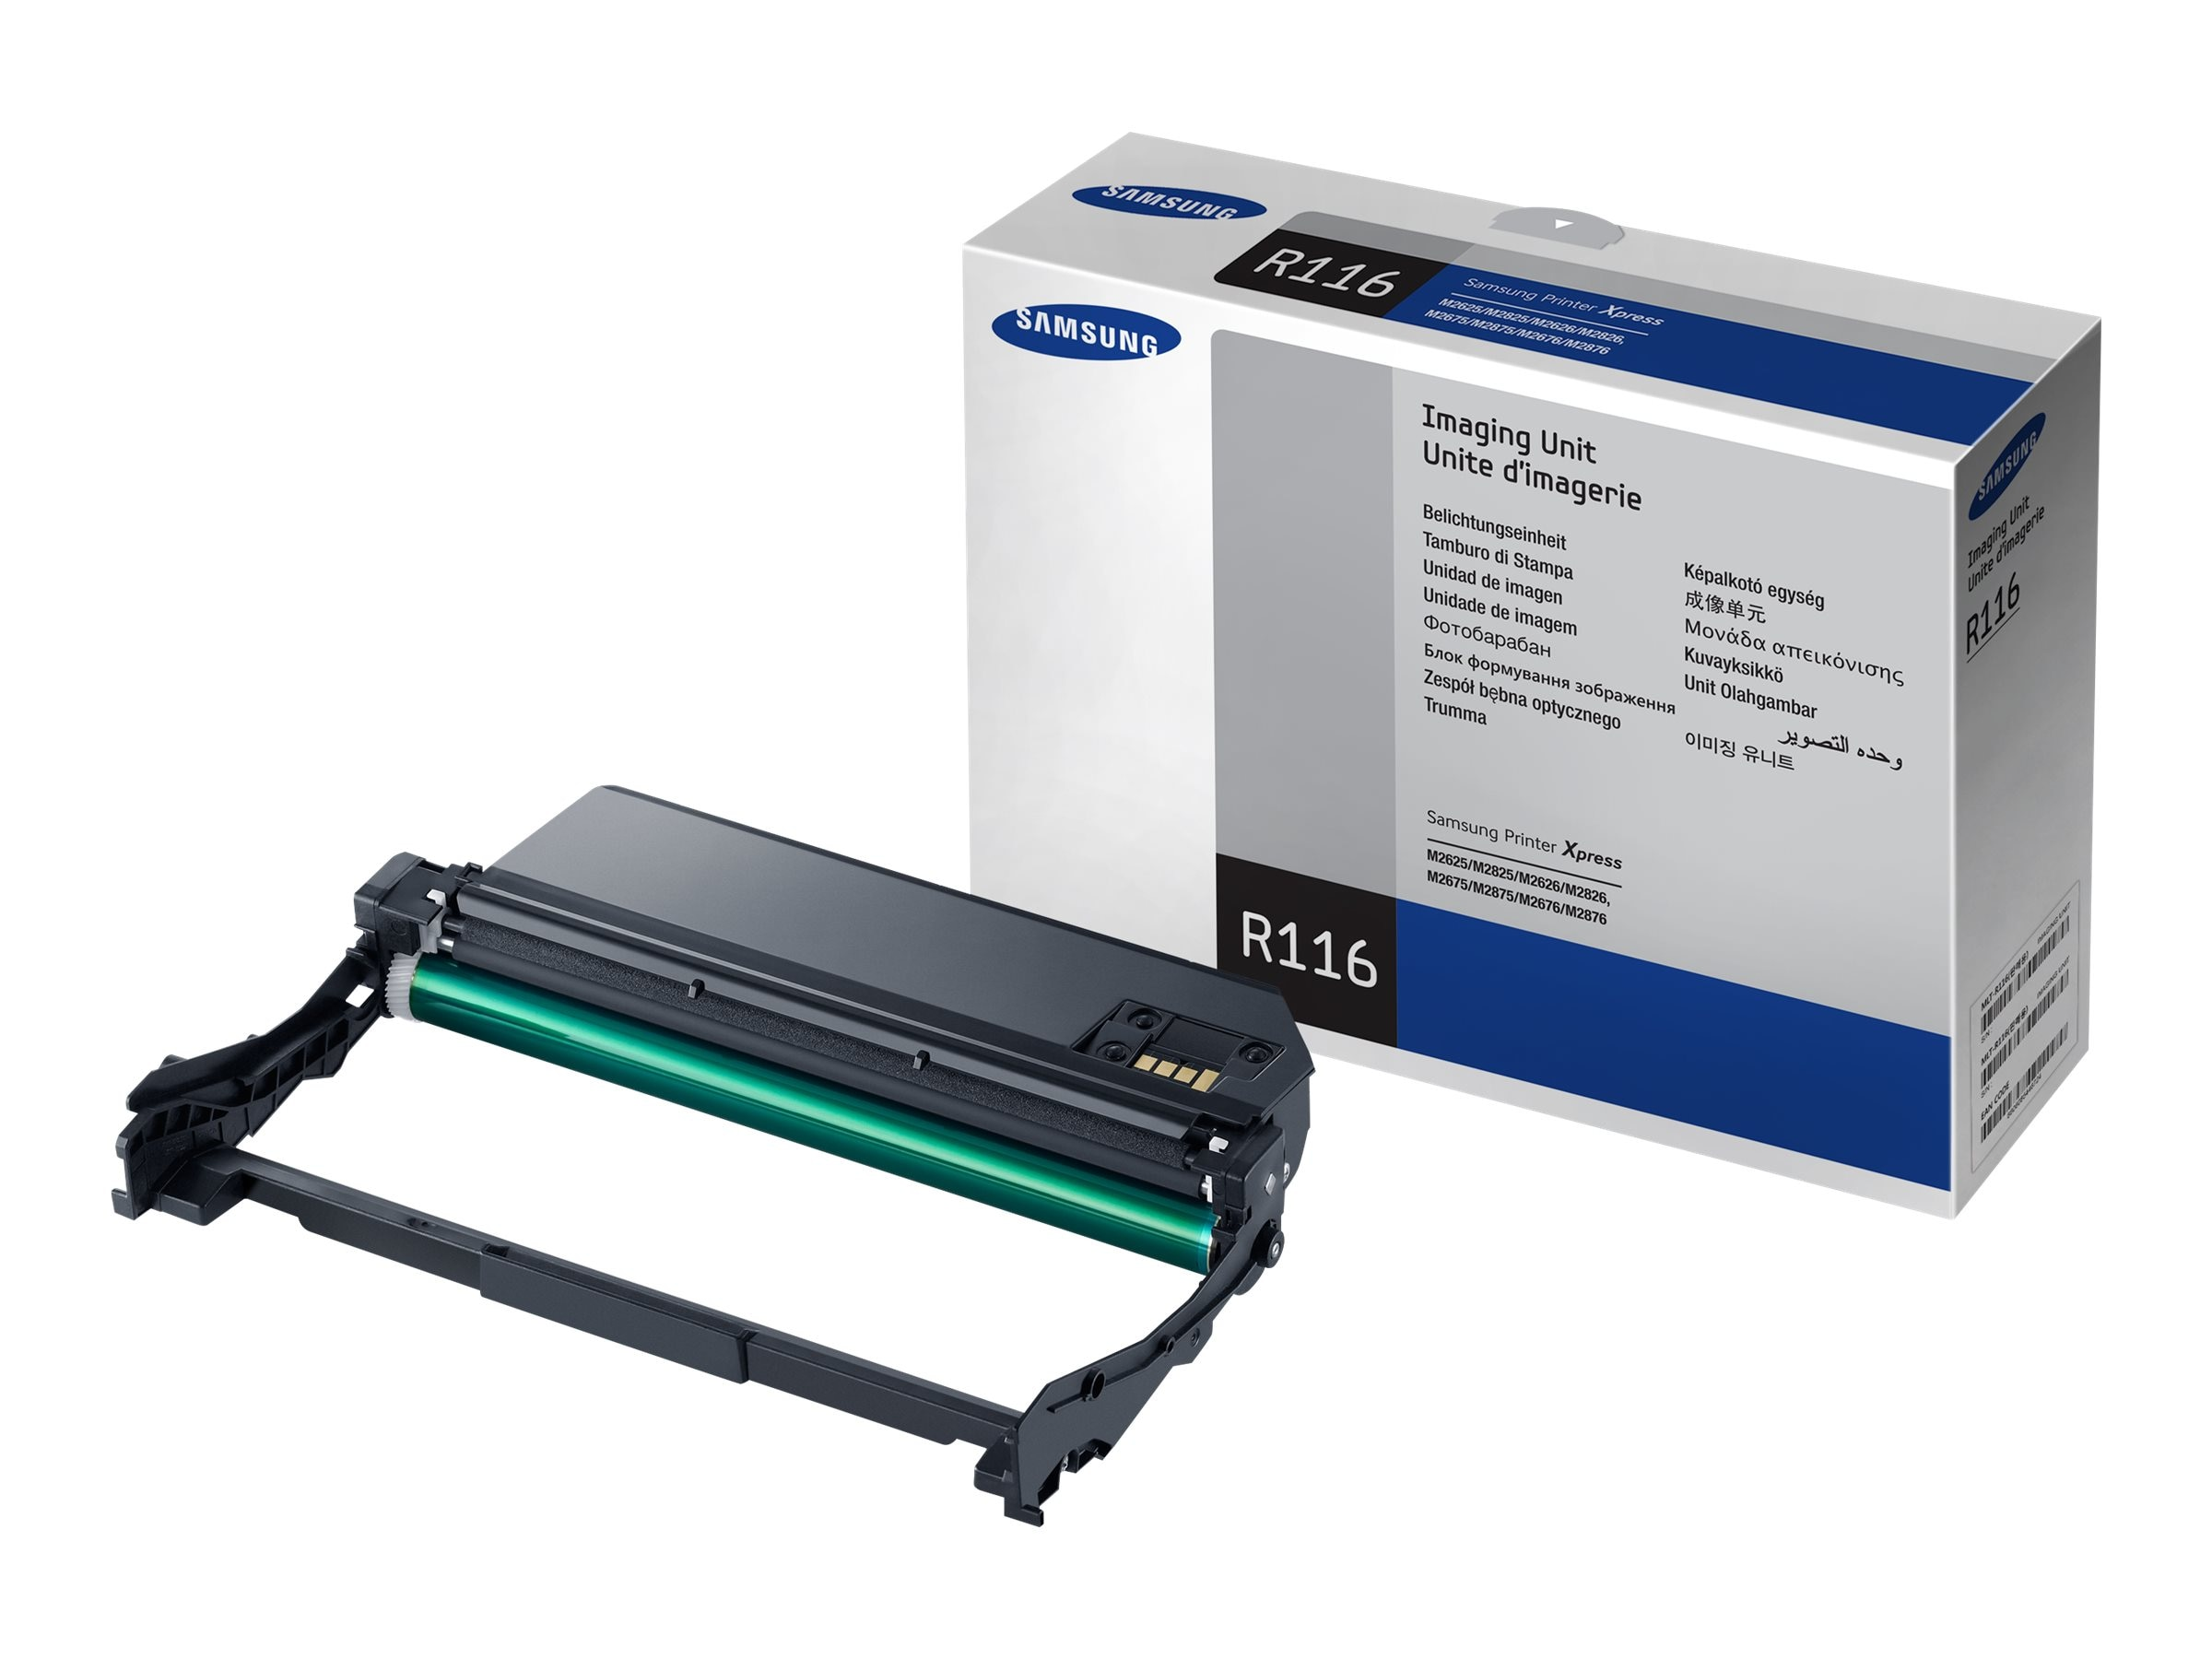 Samsung Imaging Unit for Xpress SL-M2625, SL-2626, SL-2825, SL-2826, SL-M2675, SL-2676, SL-2875, SL-2875, MLT-R116